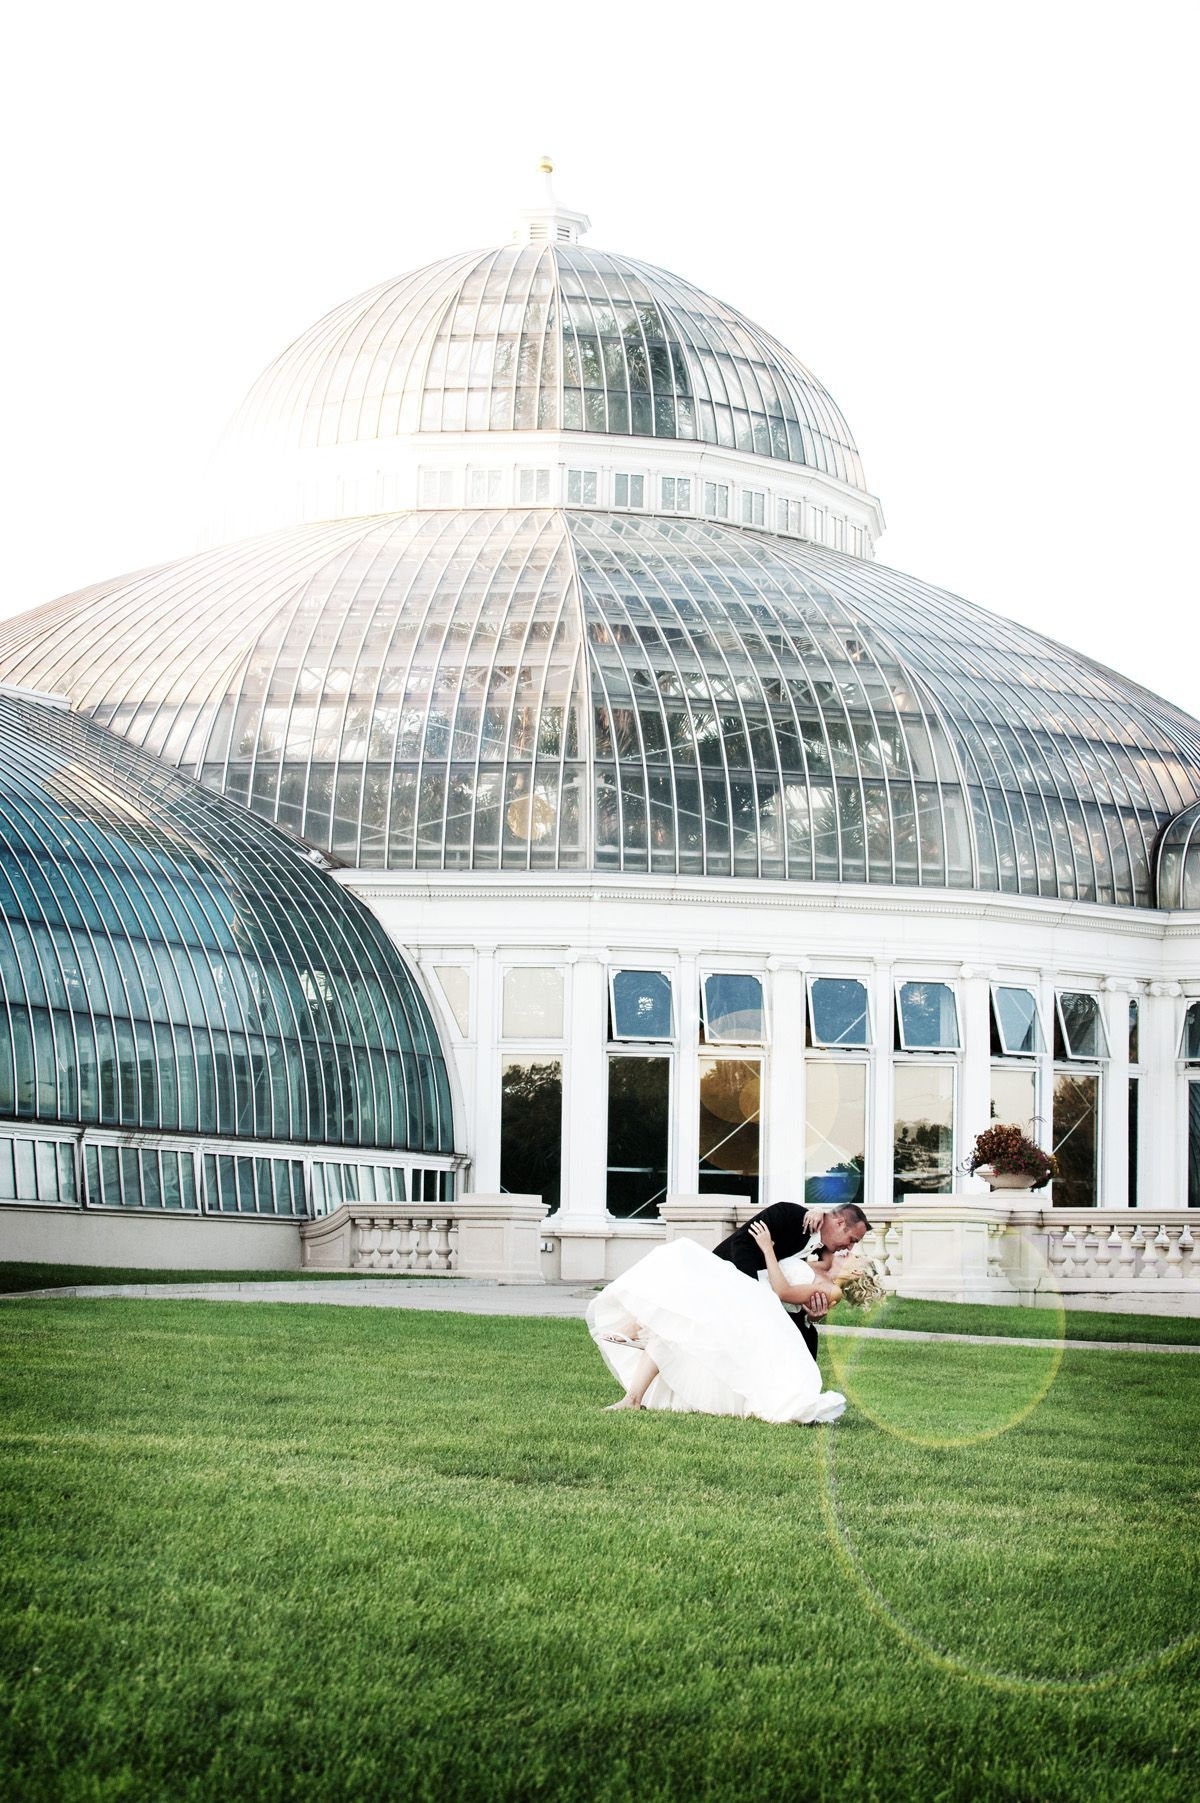 I love the Como Park Conservatory in